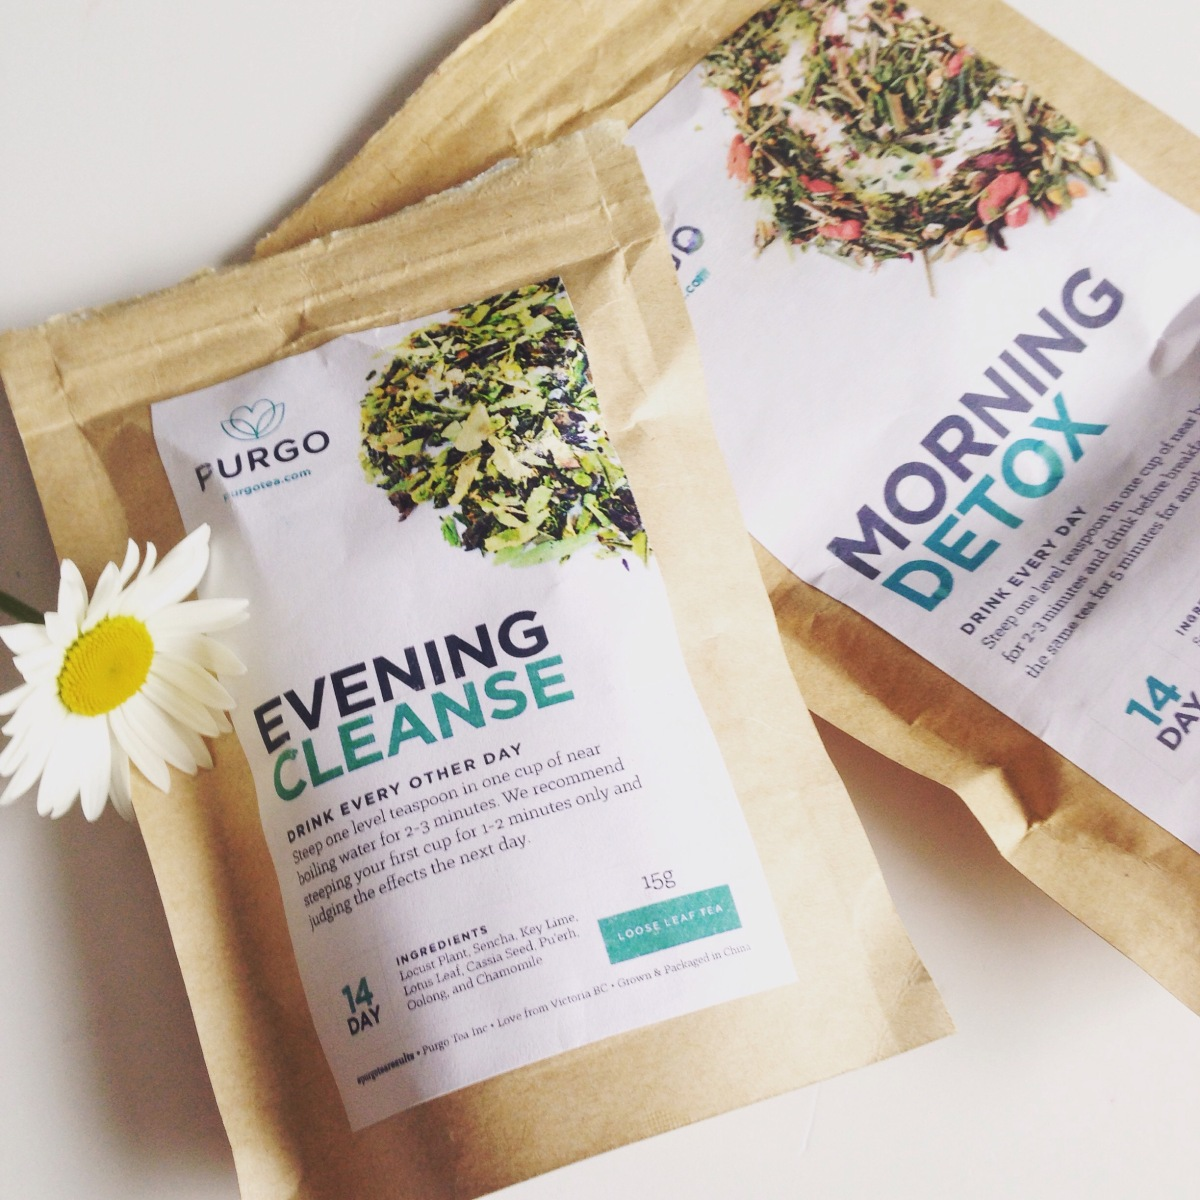 Purgo Detox Tea - Review